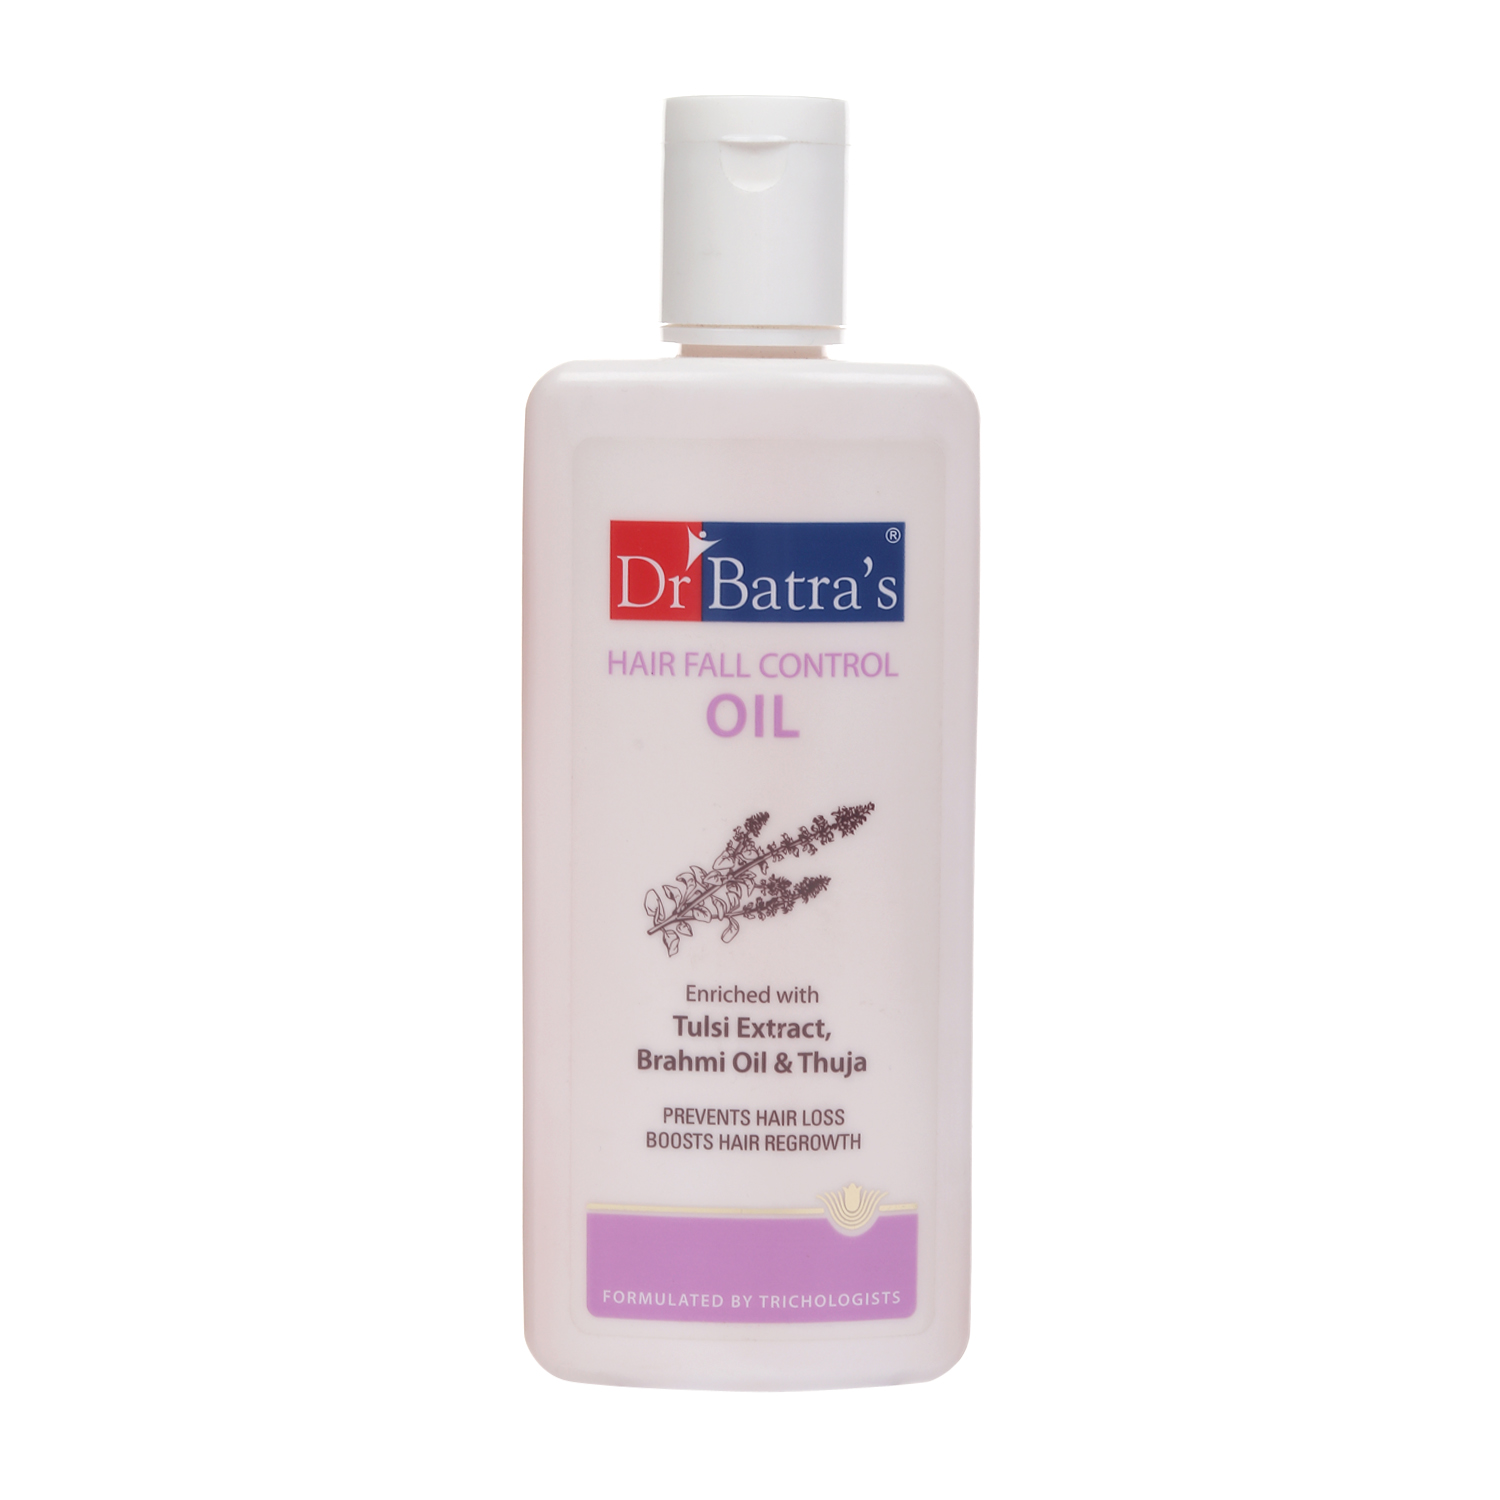 Dr Batra's | Dr Batra'sHair Fall Control Oil Enriched With Tulsi Extract, Brahmi Oil & Thuja - 200 ml